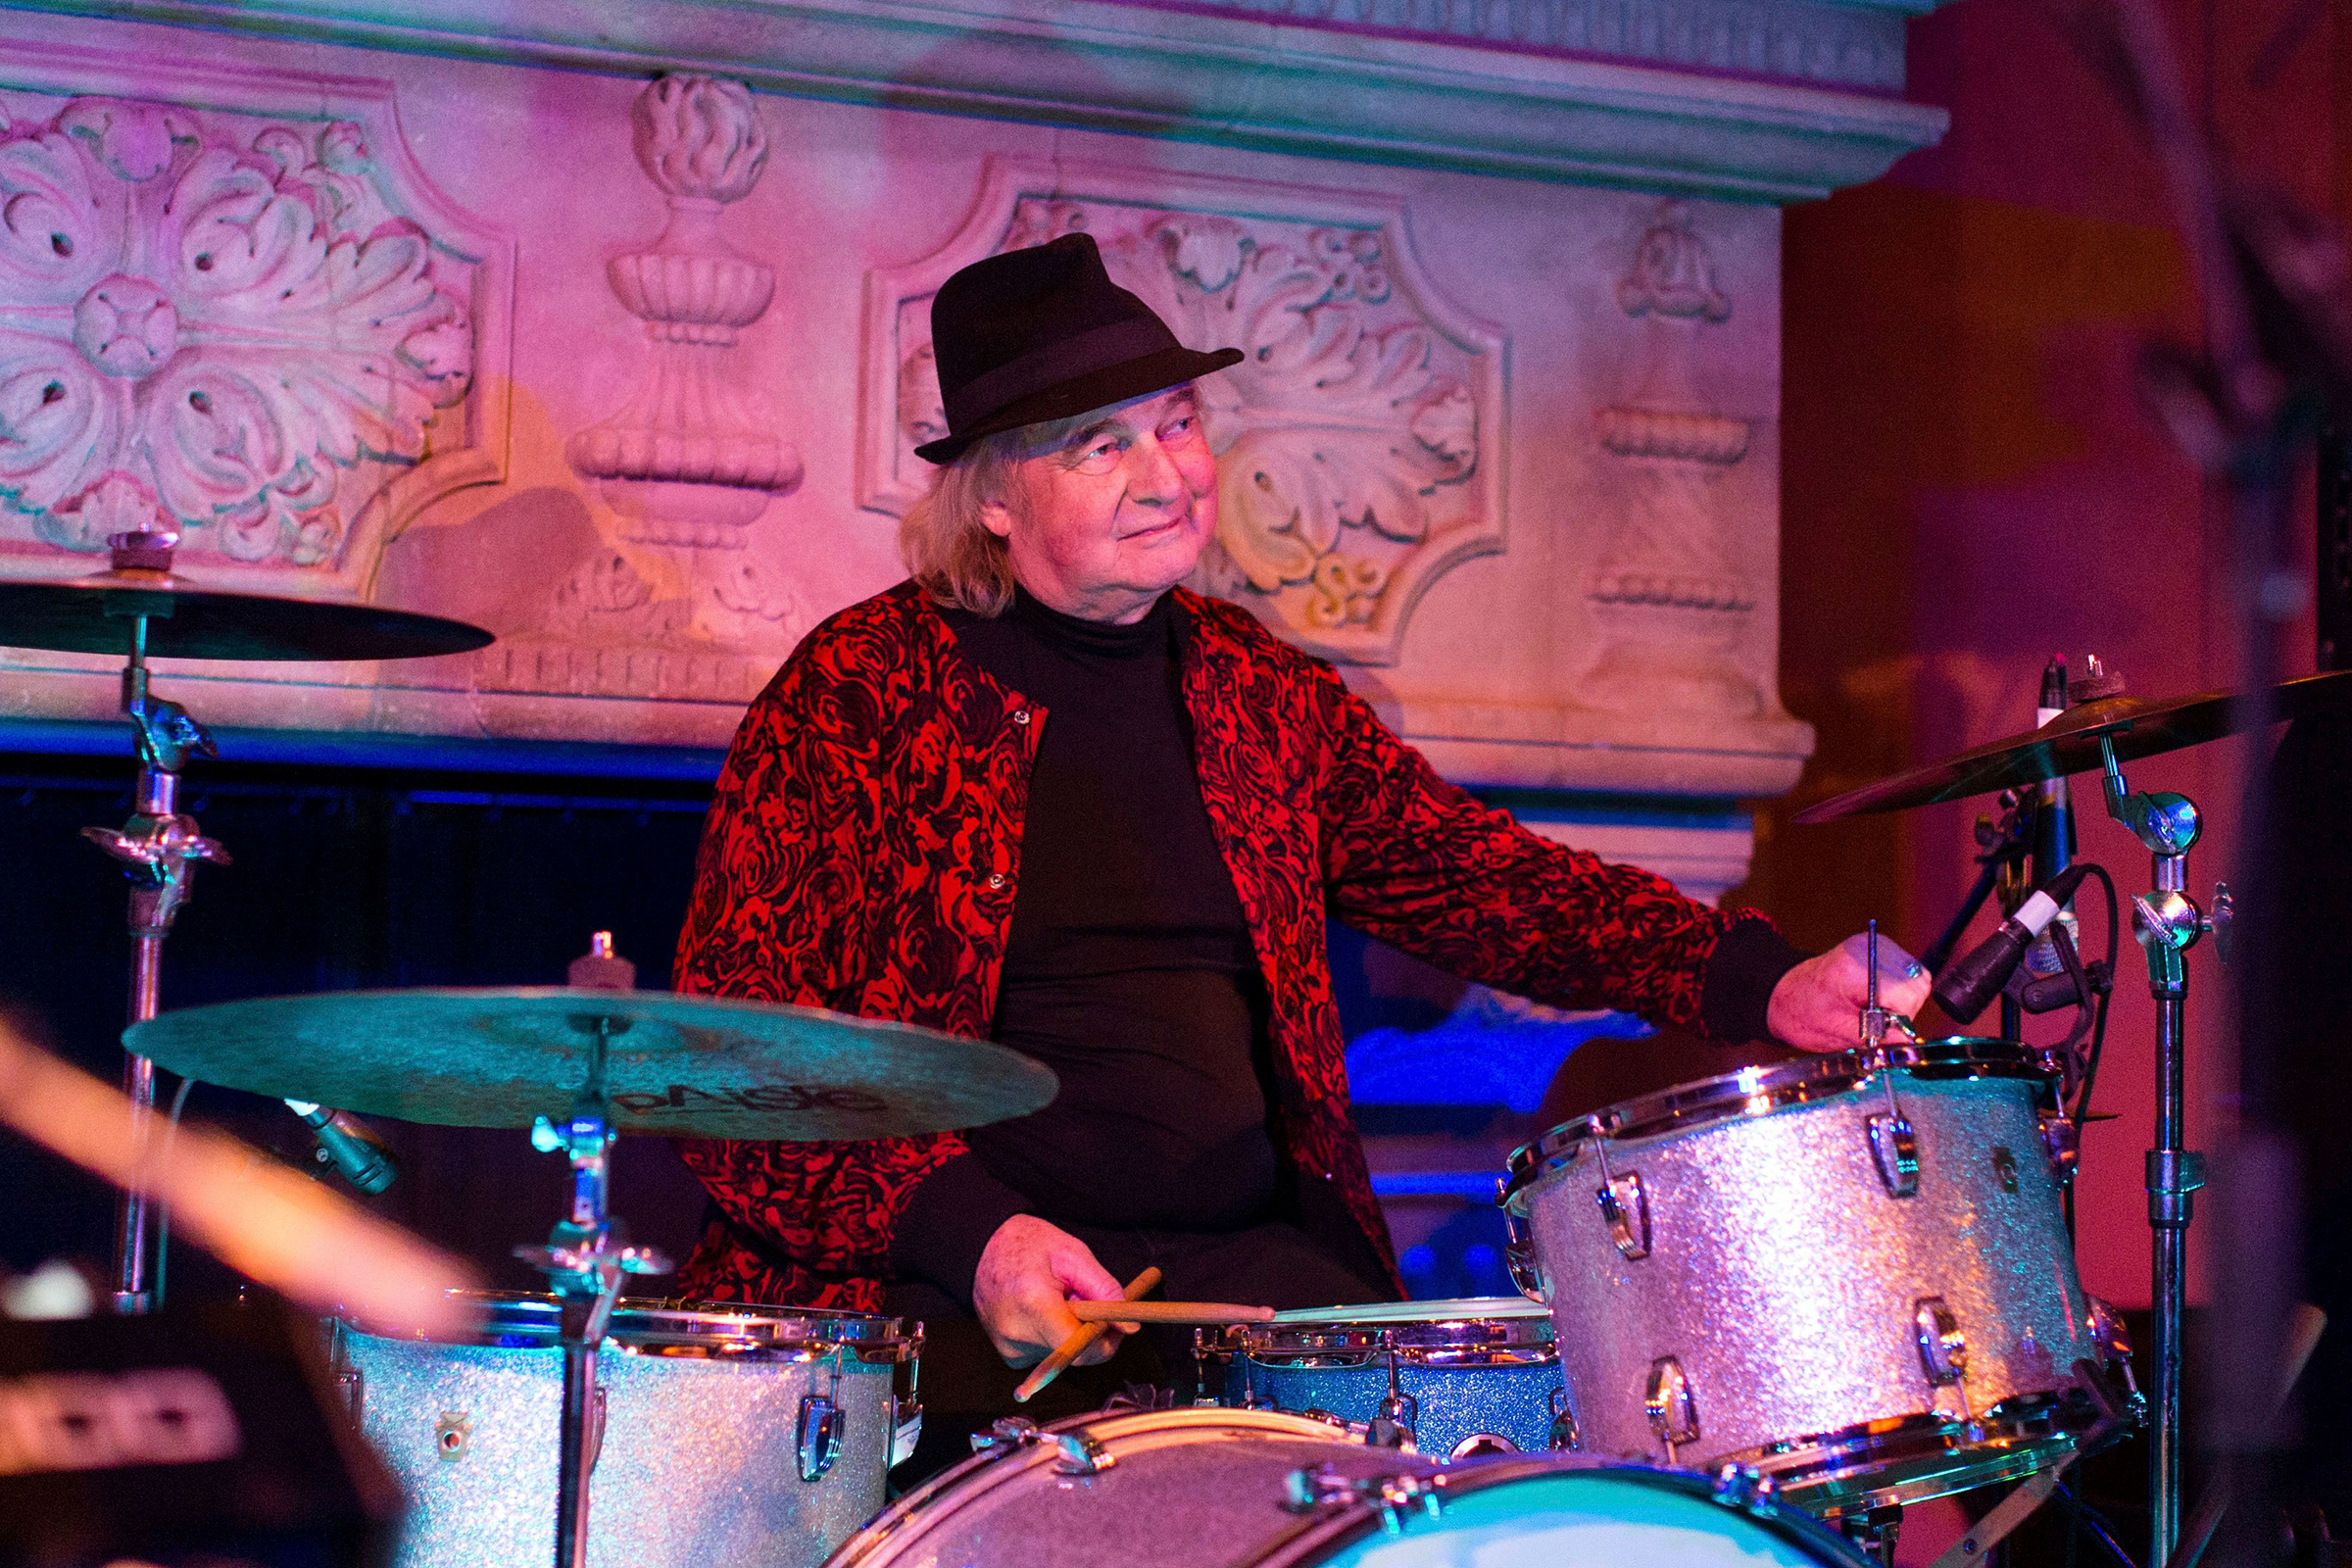 Drummer Alan White Reflects on His Years Playing With John Lennon and Yes